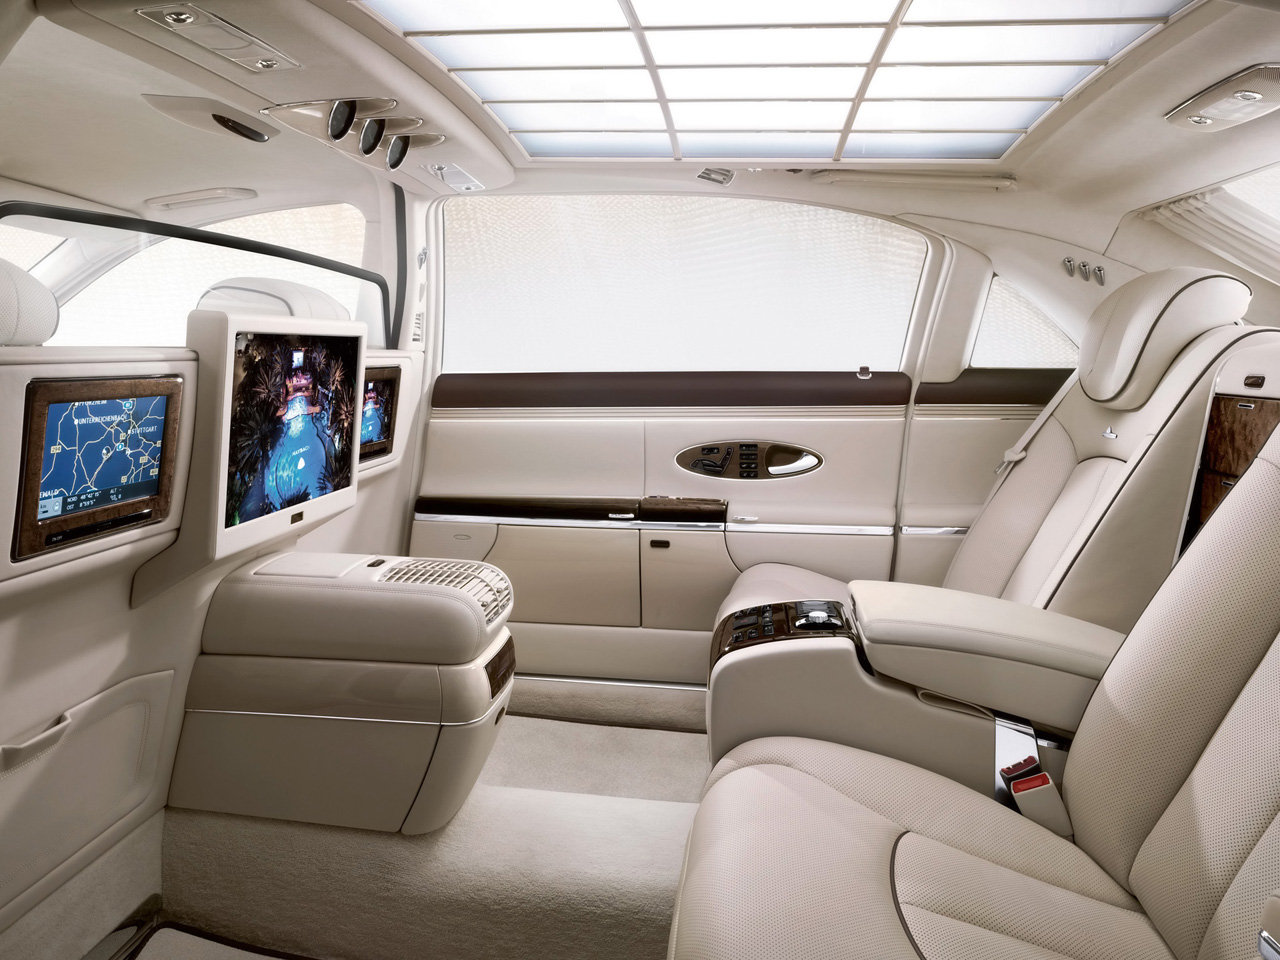 maybach interior pictures cars n bikes. Black Bedroom Furniture Sets. Home Design Ideas